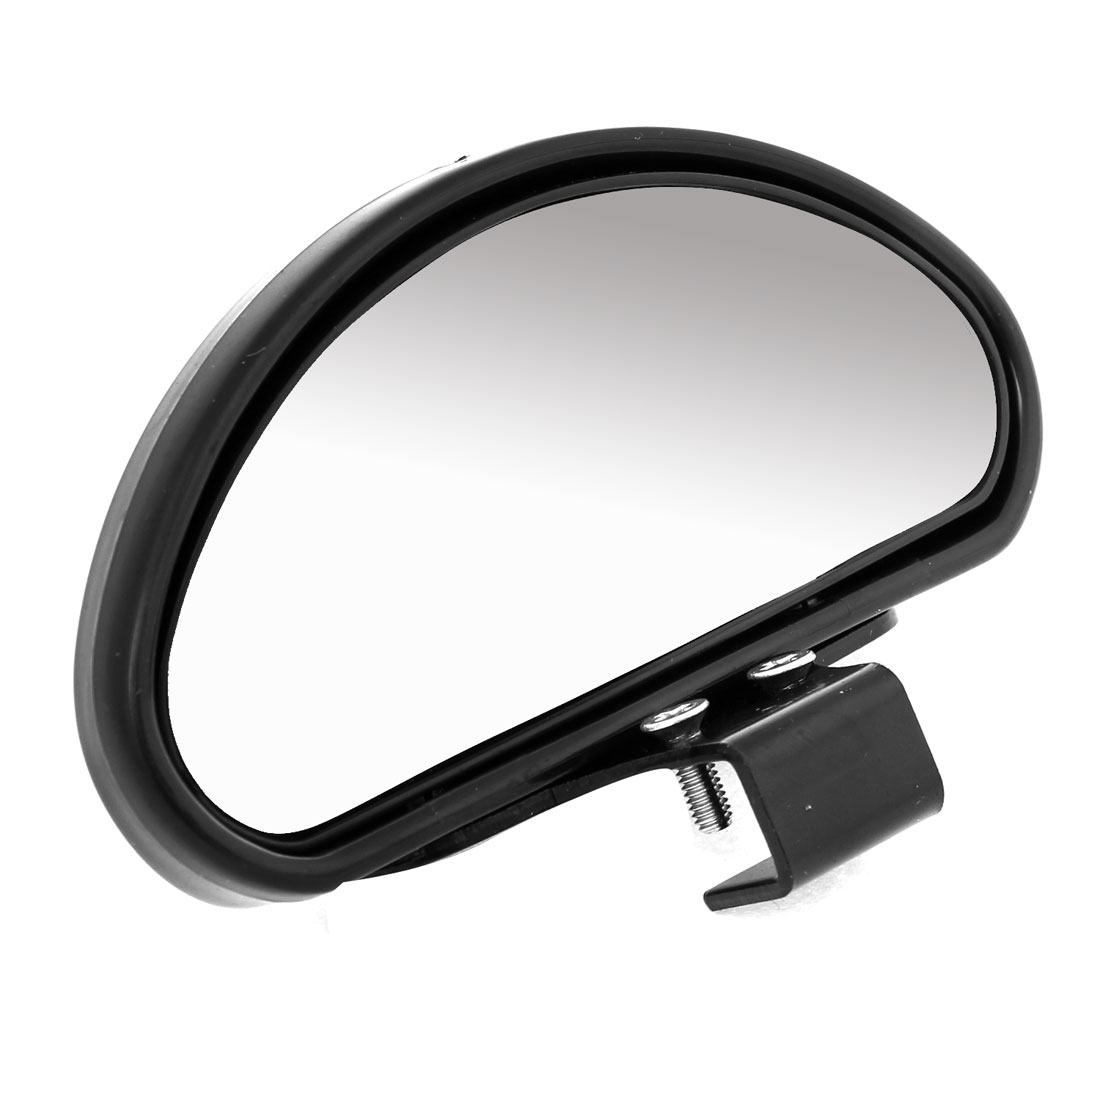 Universal Black Plastic Casing Car Side Rear View Blind Spot Aided Mirror